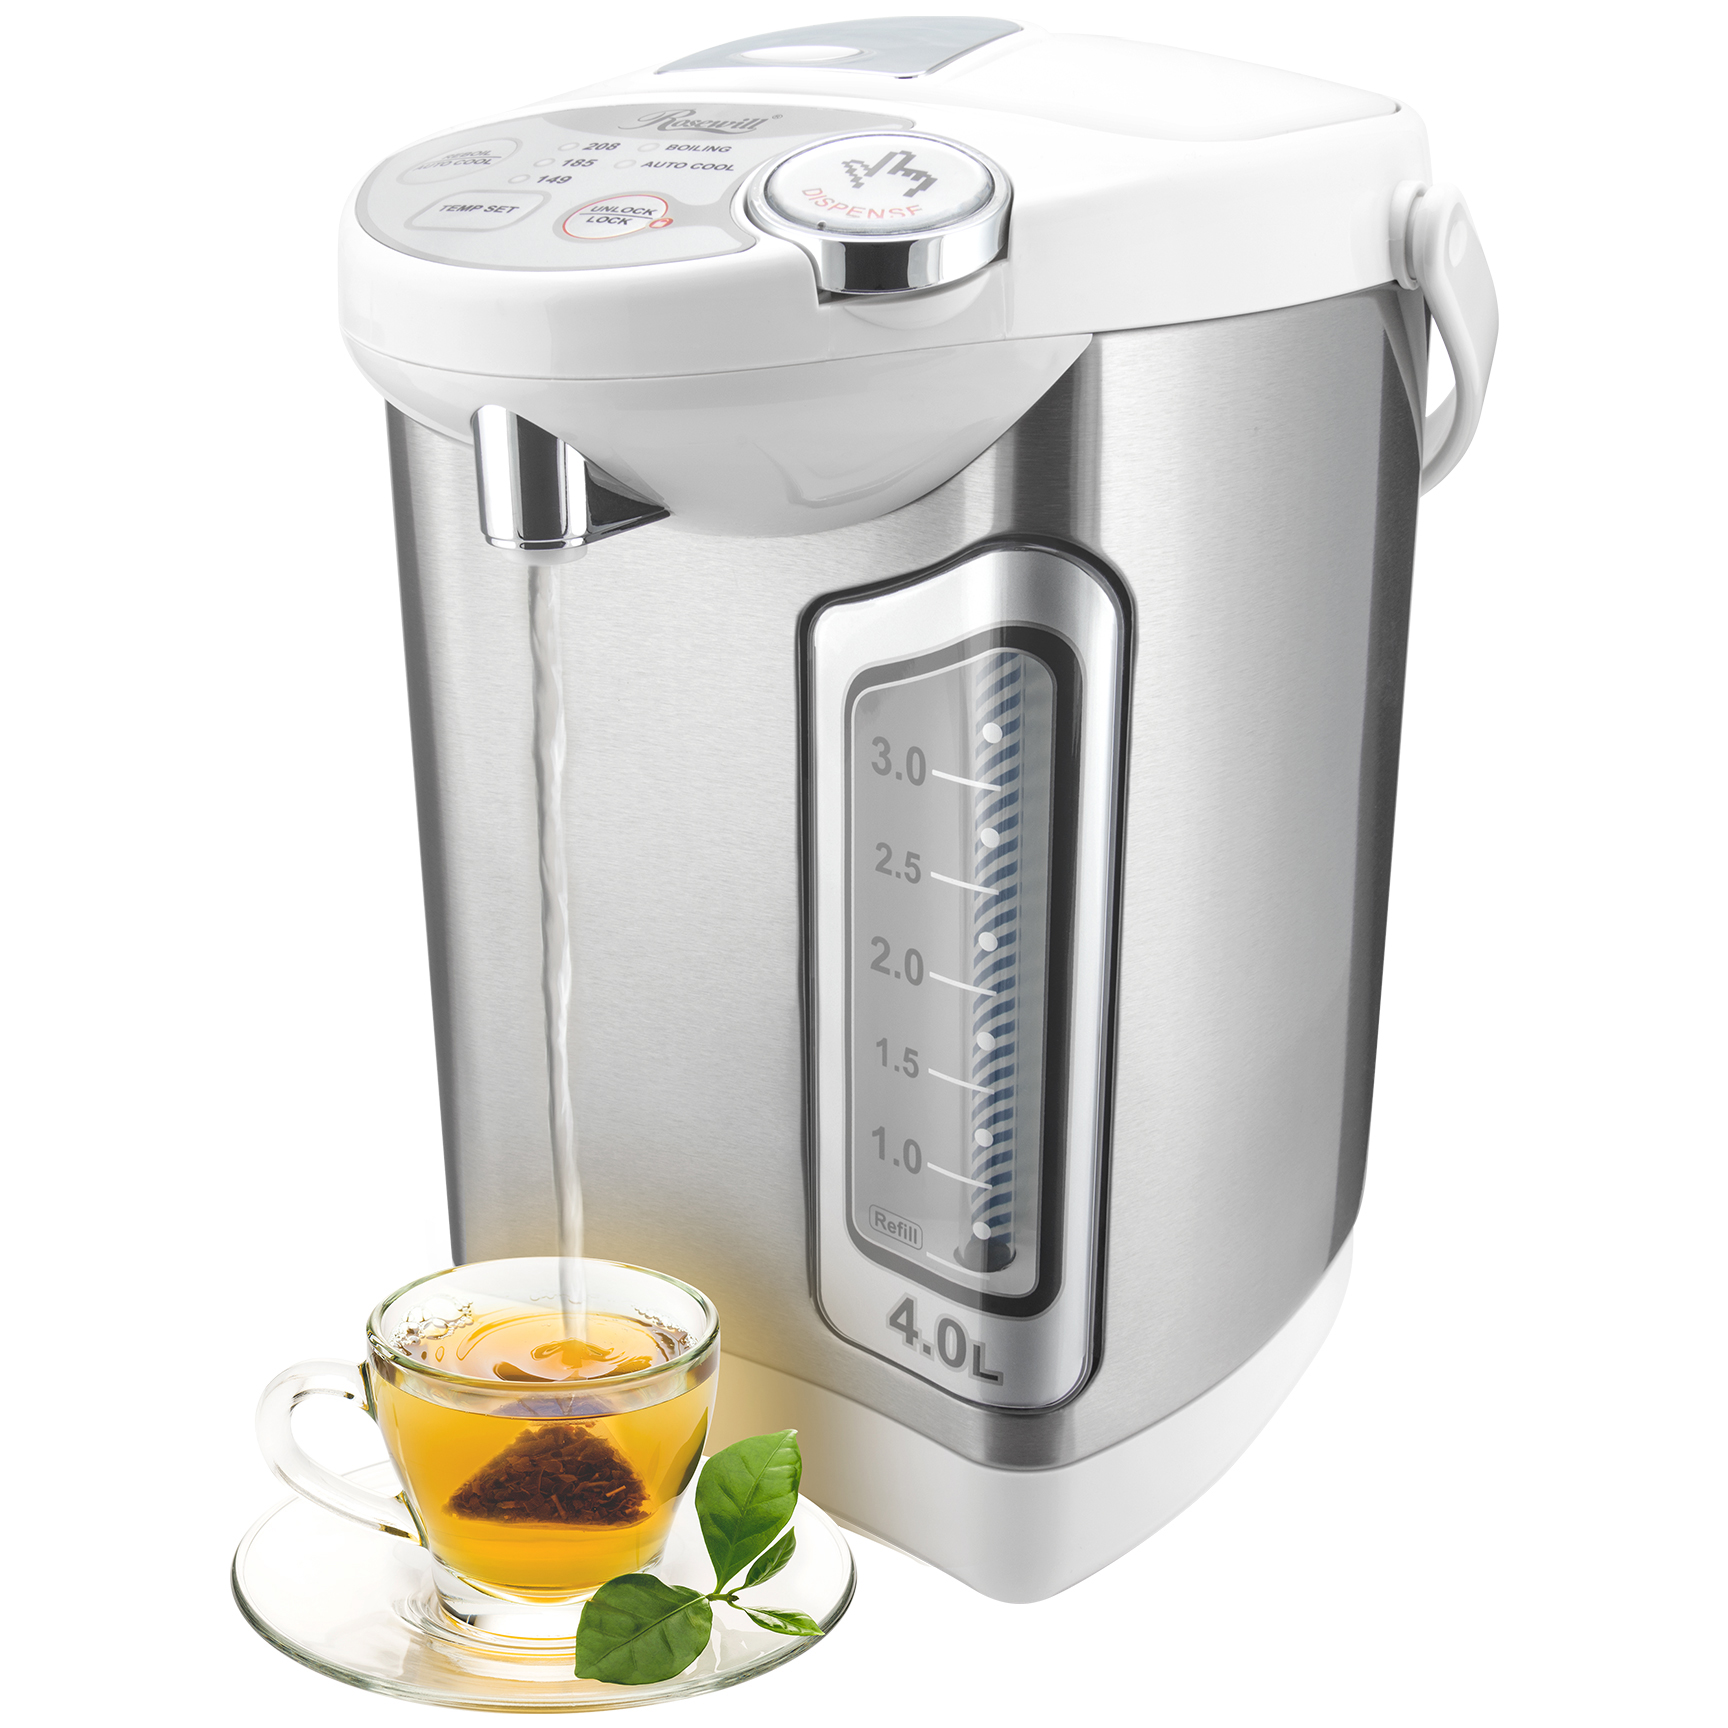 Rosewill R-HAP-15002 4.0 Liters Stainless Steel Electric Hot Water Dispenser with Auto Feed Hot Water Boiler and Warmer